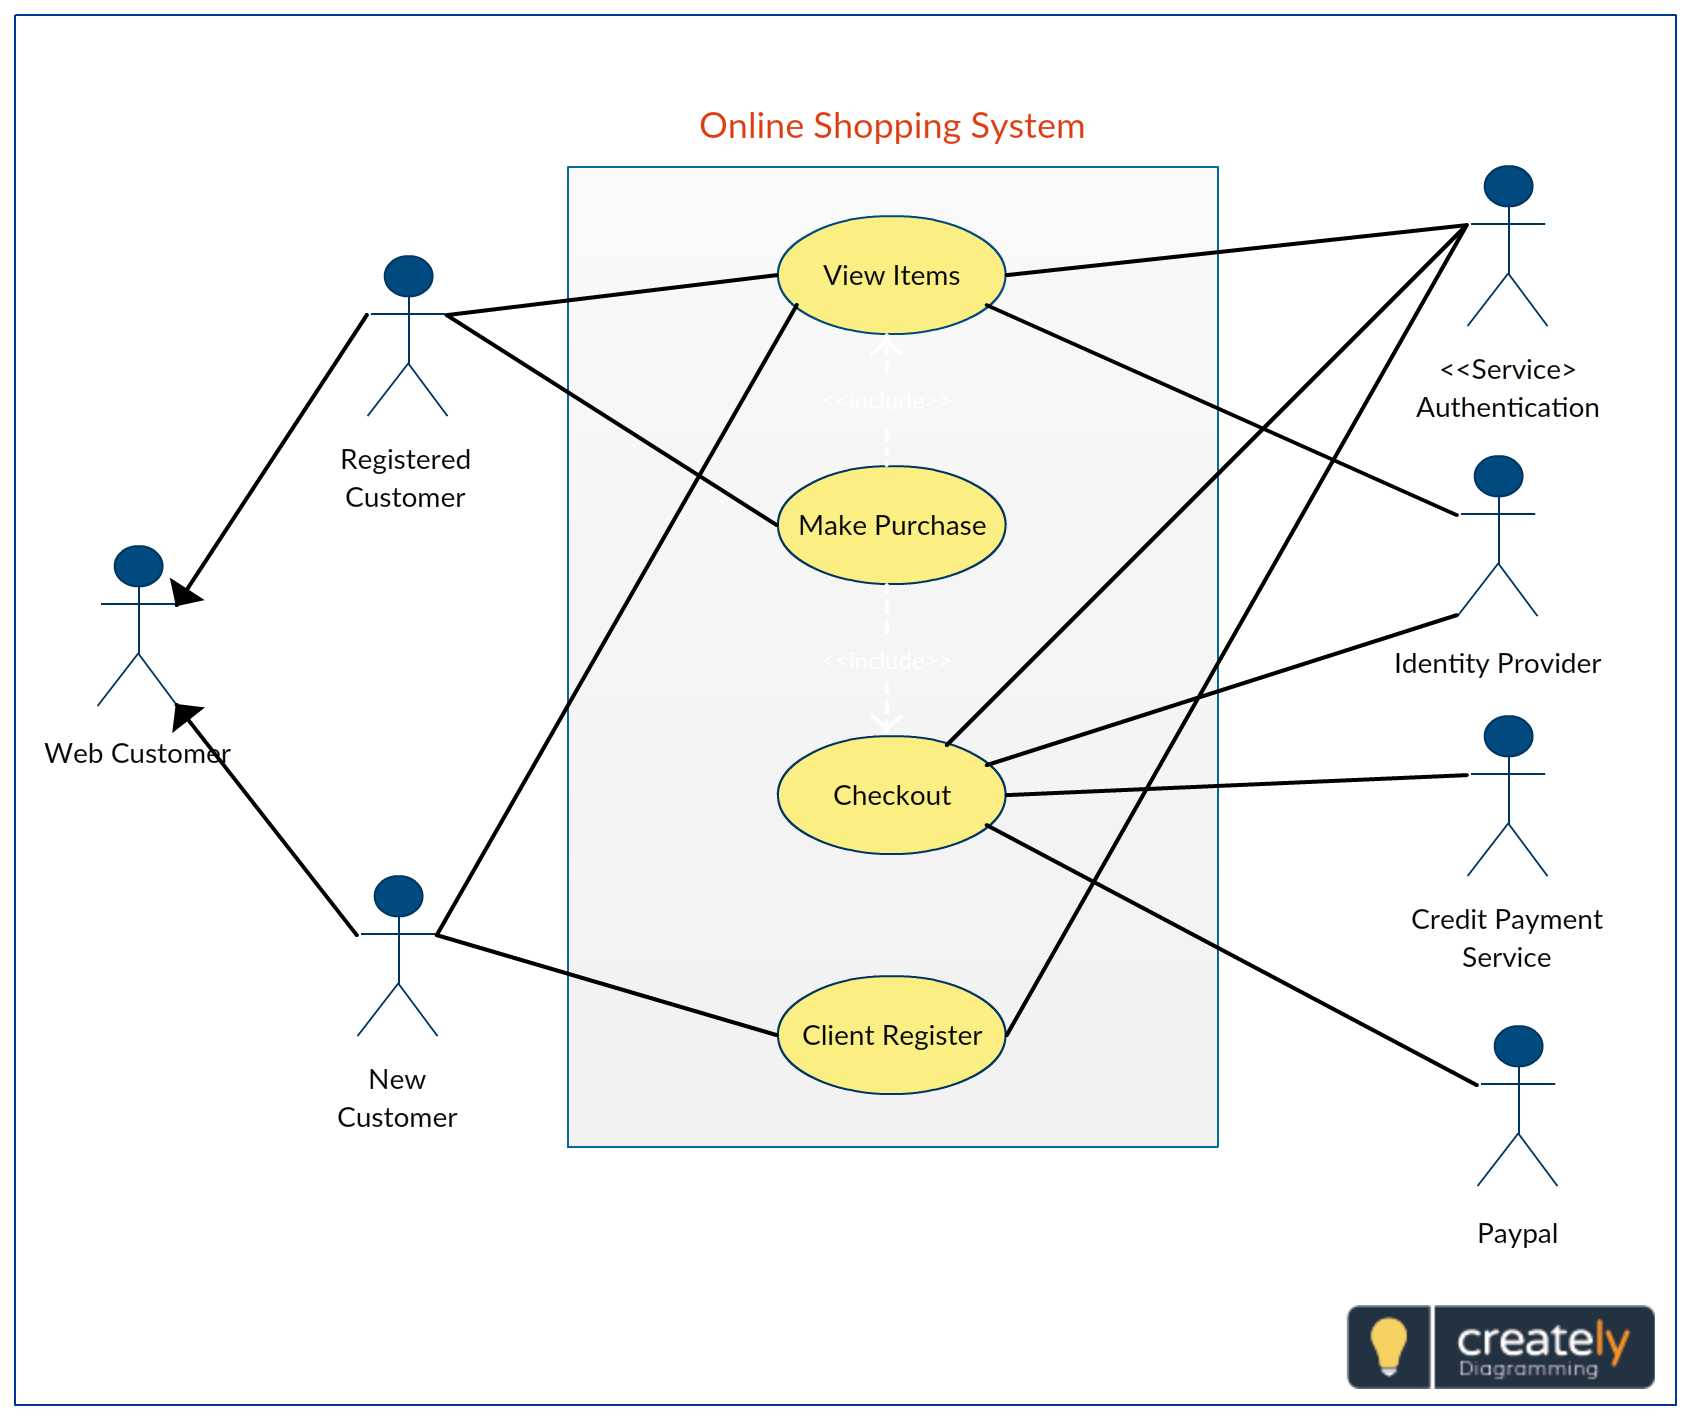 medium resolution of a use case diagram uml showing online shopping system actors a use case diagram